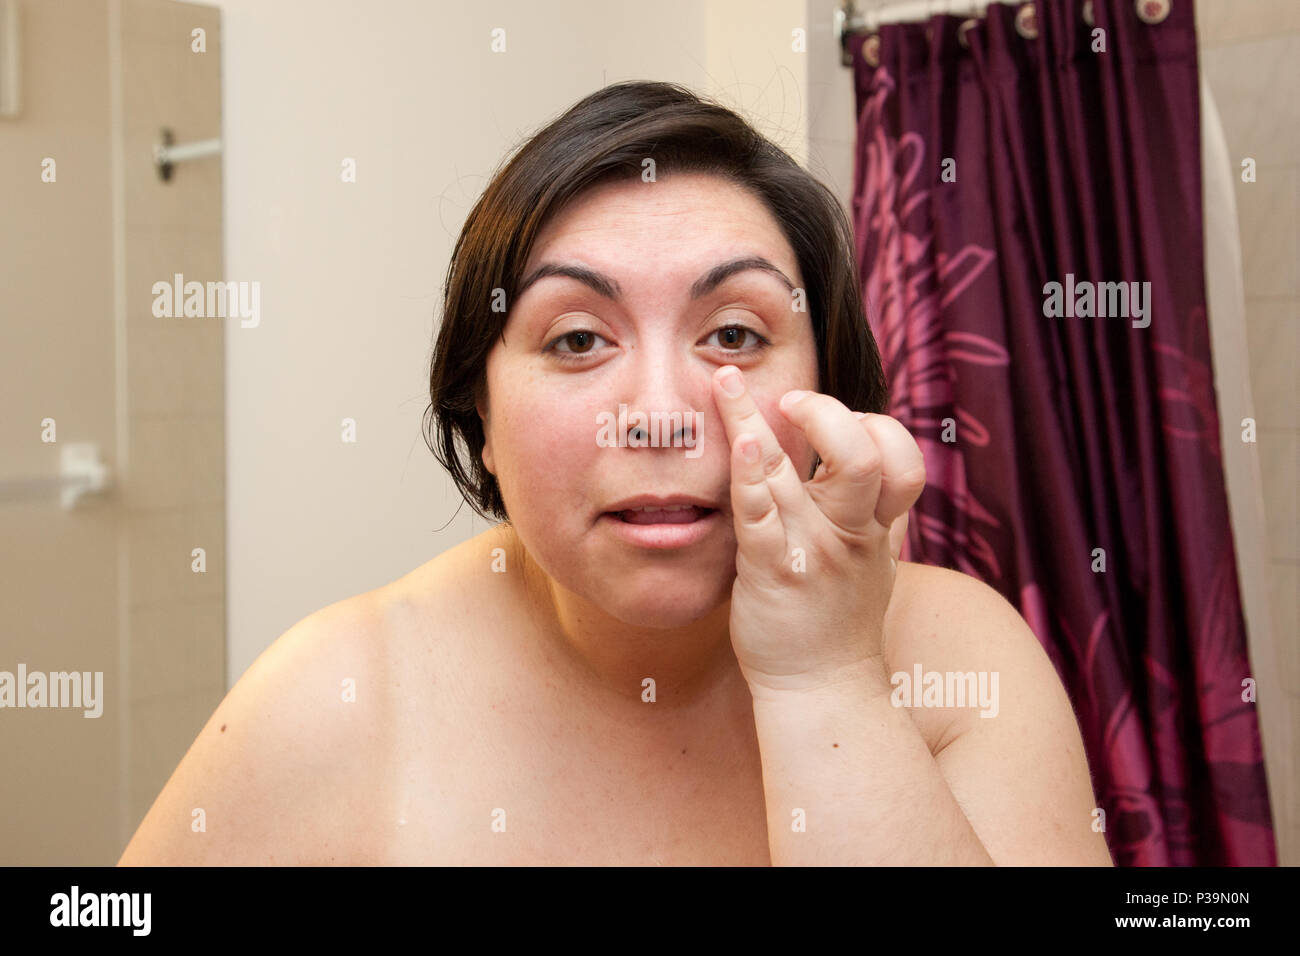 Woman touches and looks at the bags under her eyes with bare shoulders in the bathroom - Stock Image